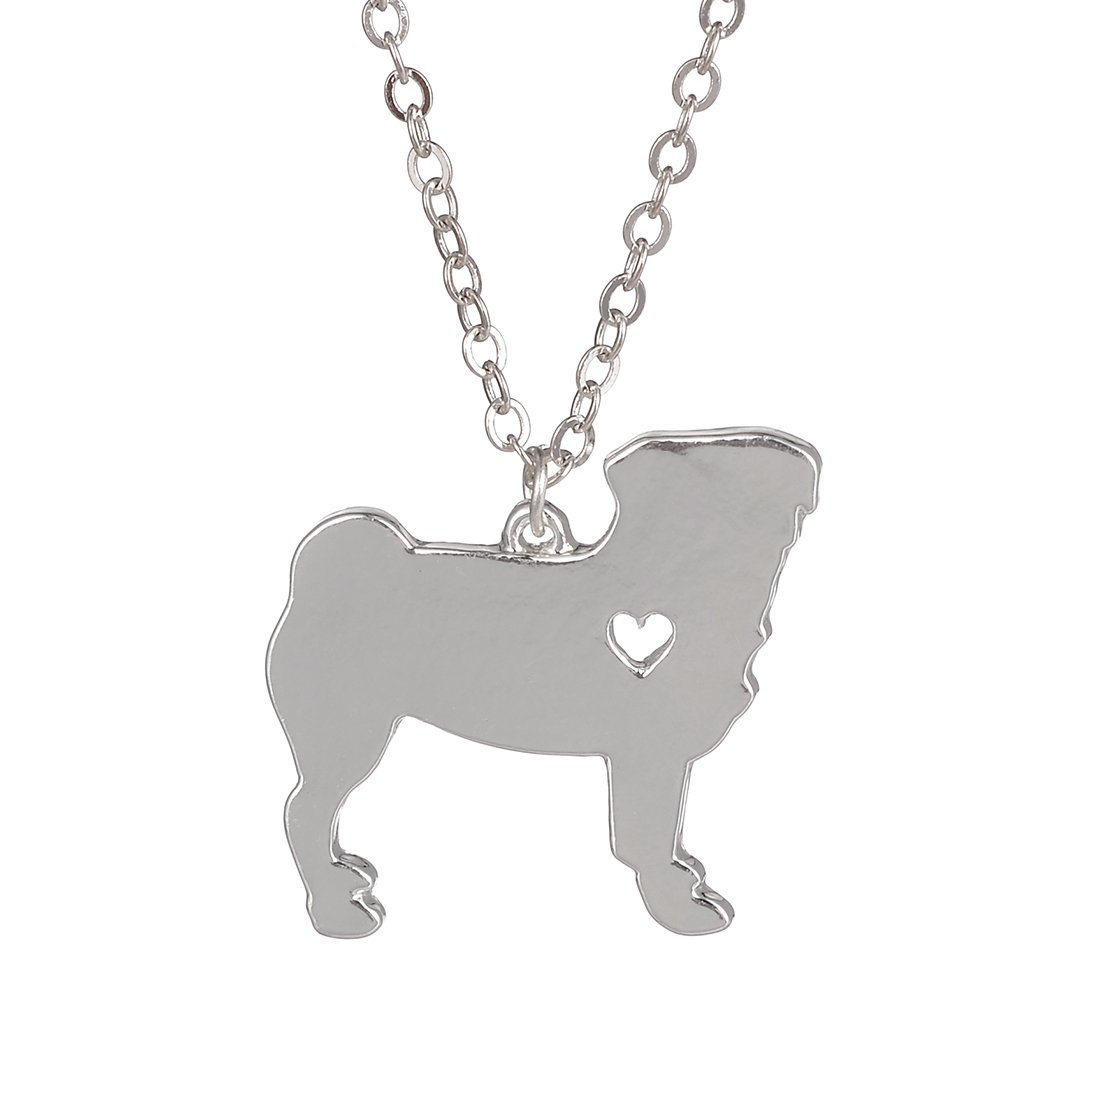 Silver Pug Necklace Dog Pendant Jewelry Breed Pet Jewelry Memorial Gift Hunters lovers